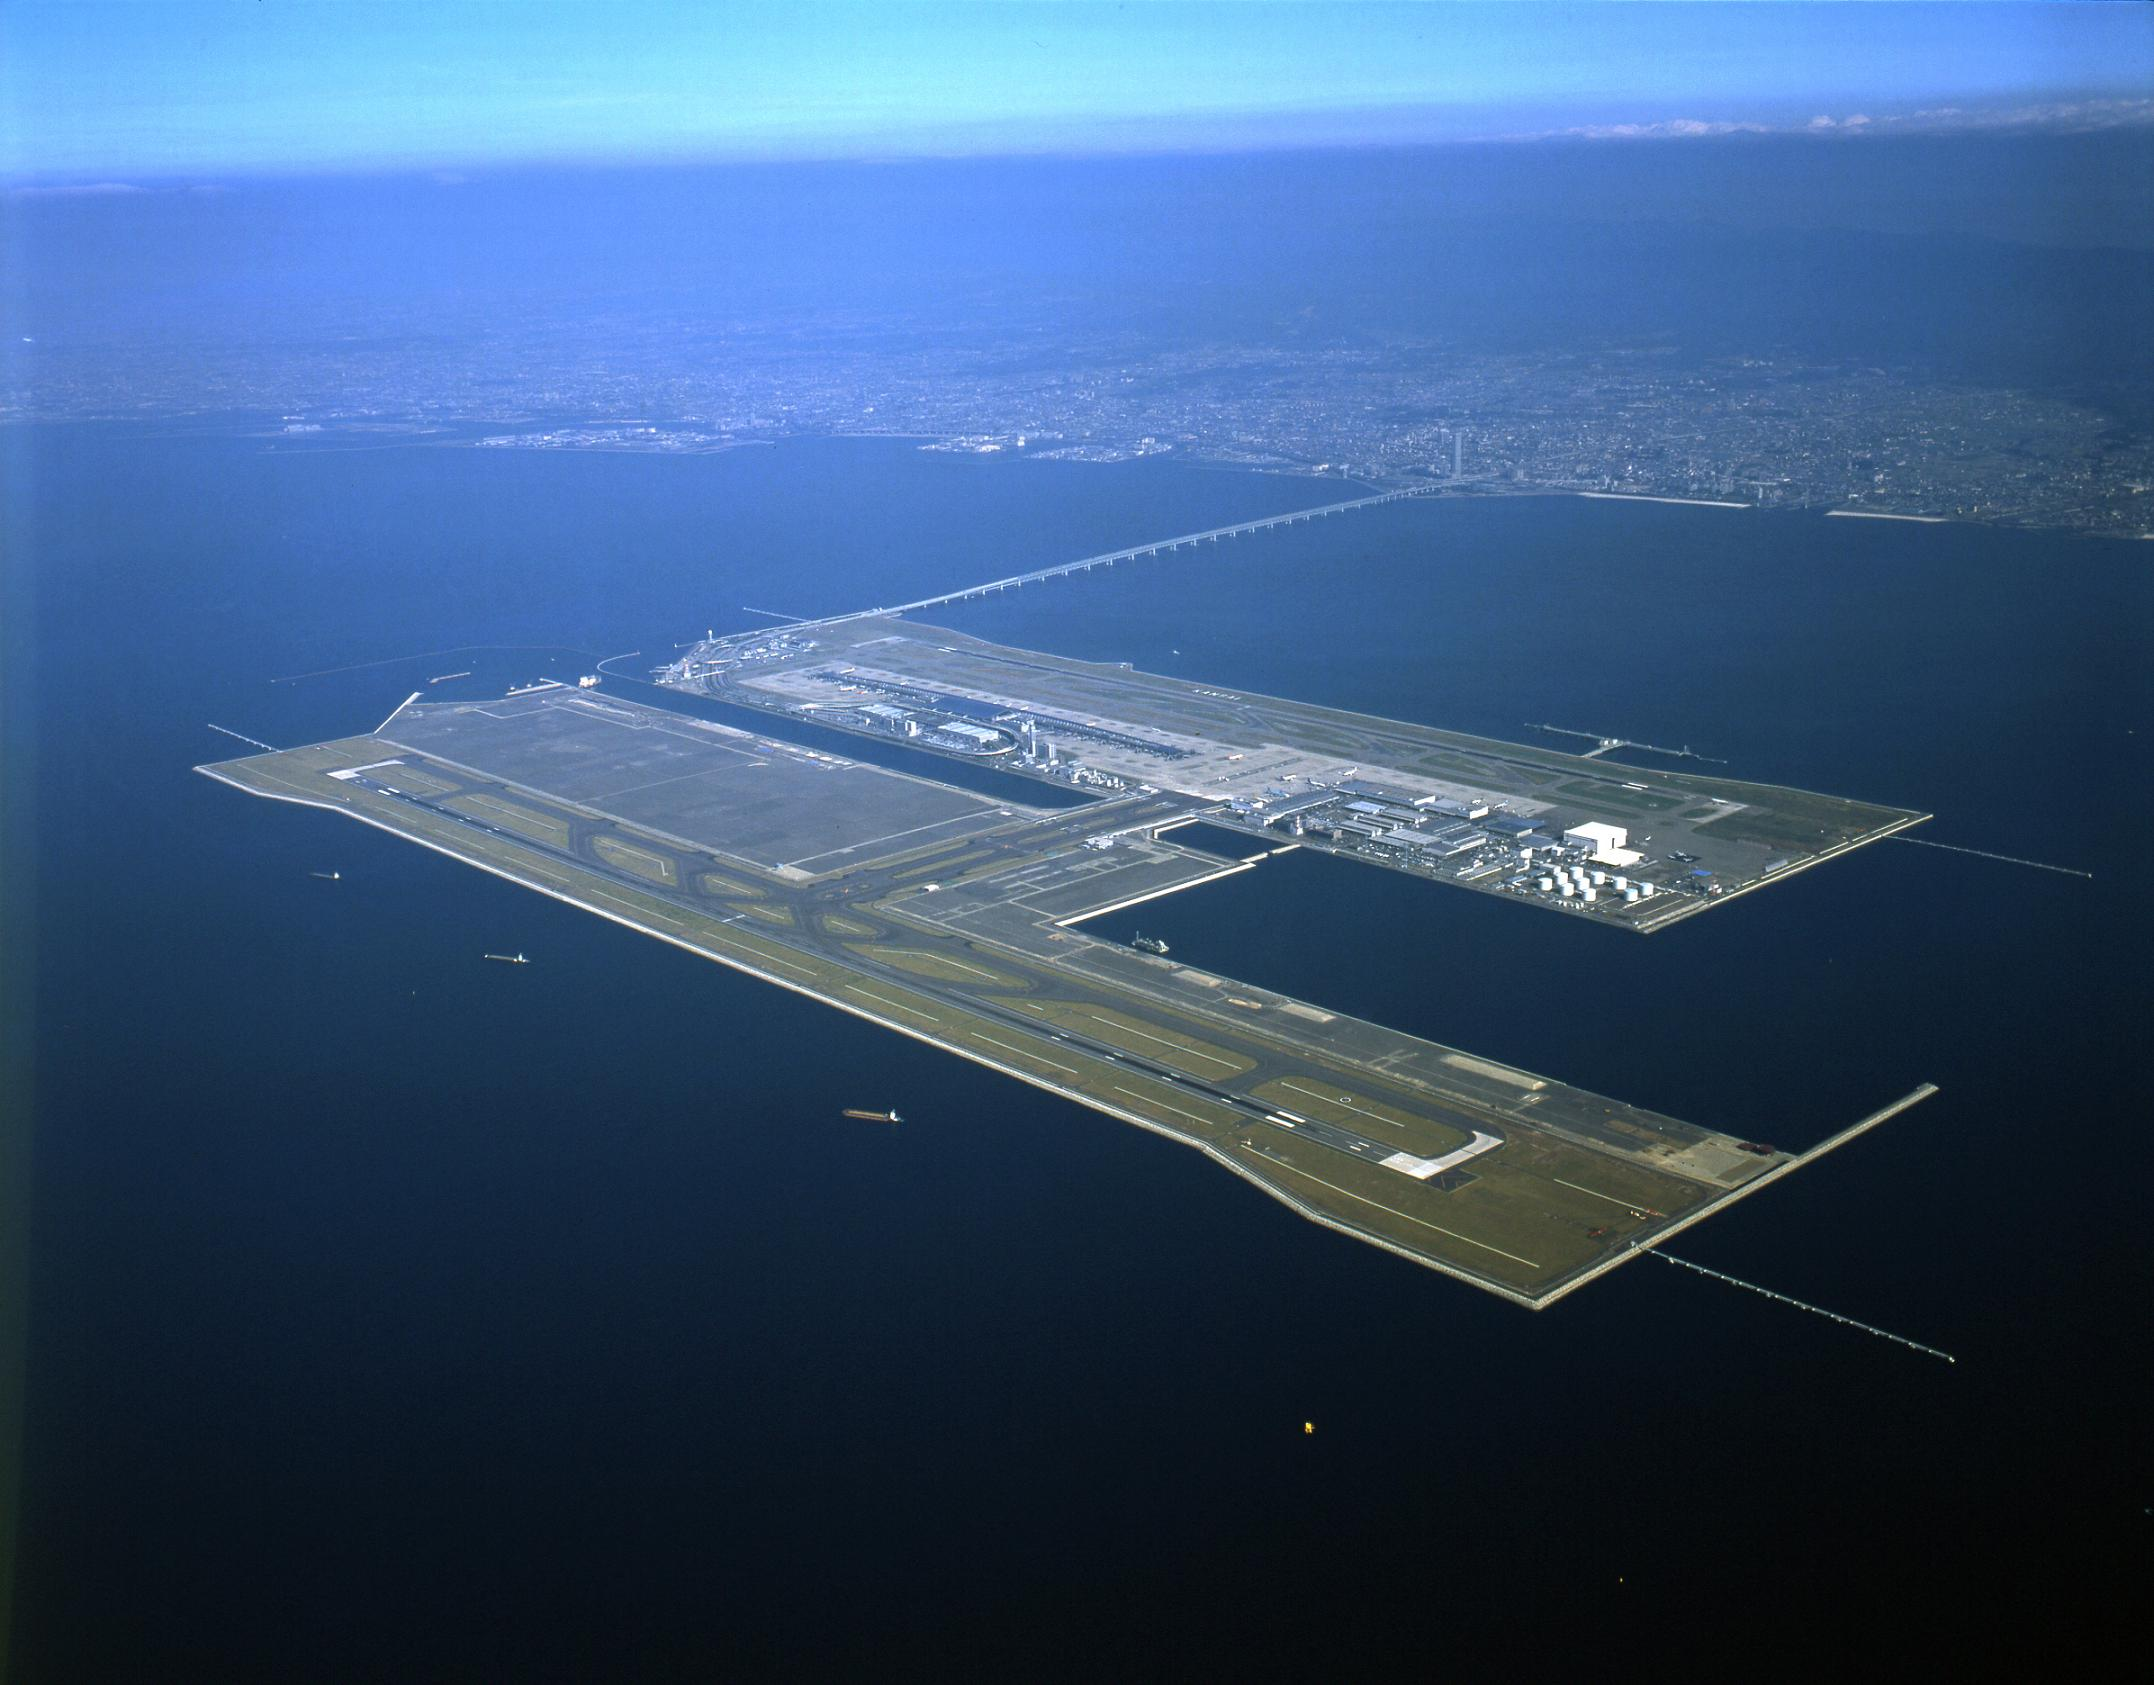 kansai-international-airport_1.jpg